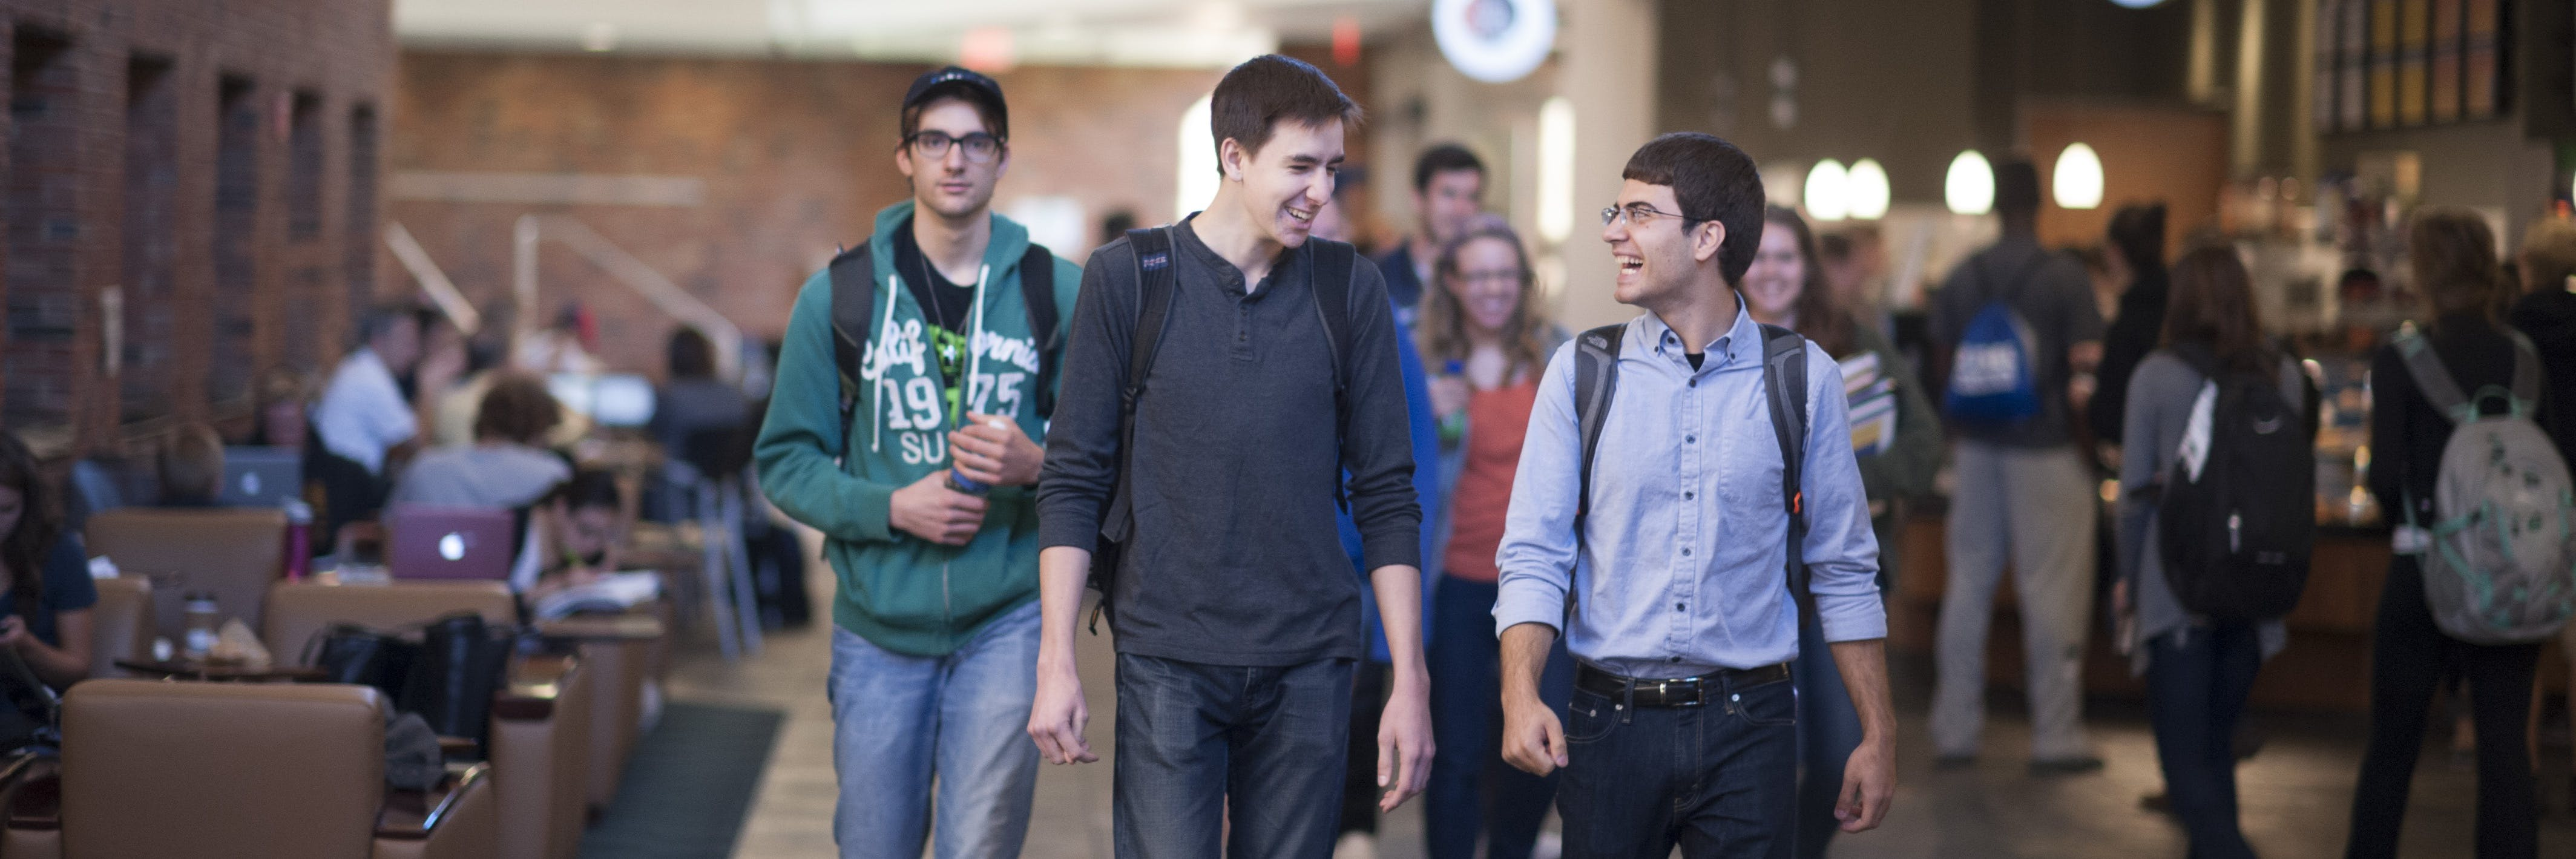 Students walking and chatting in the student commons